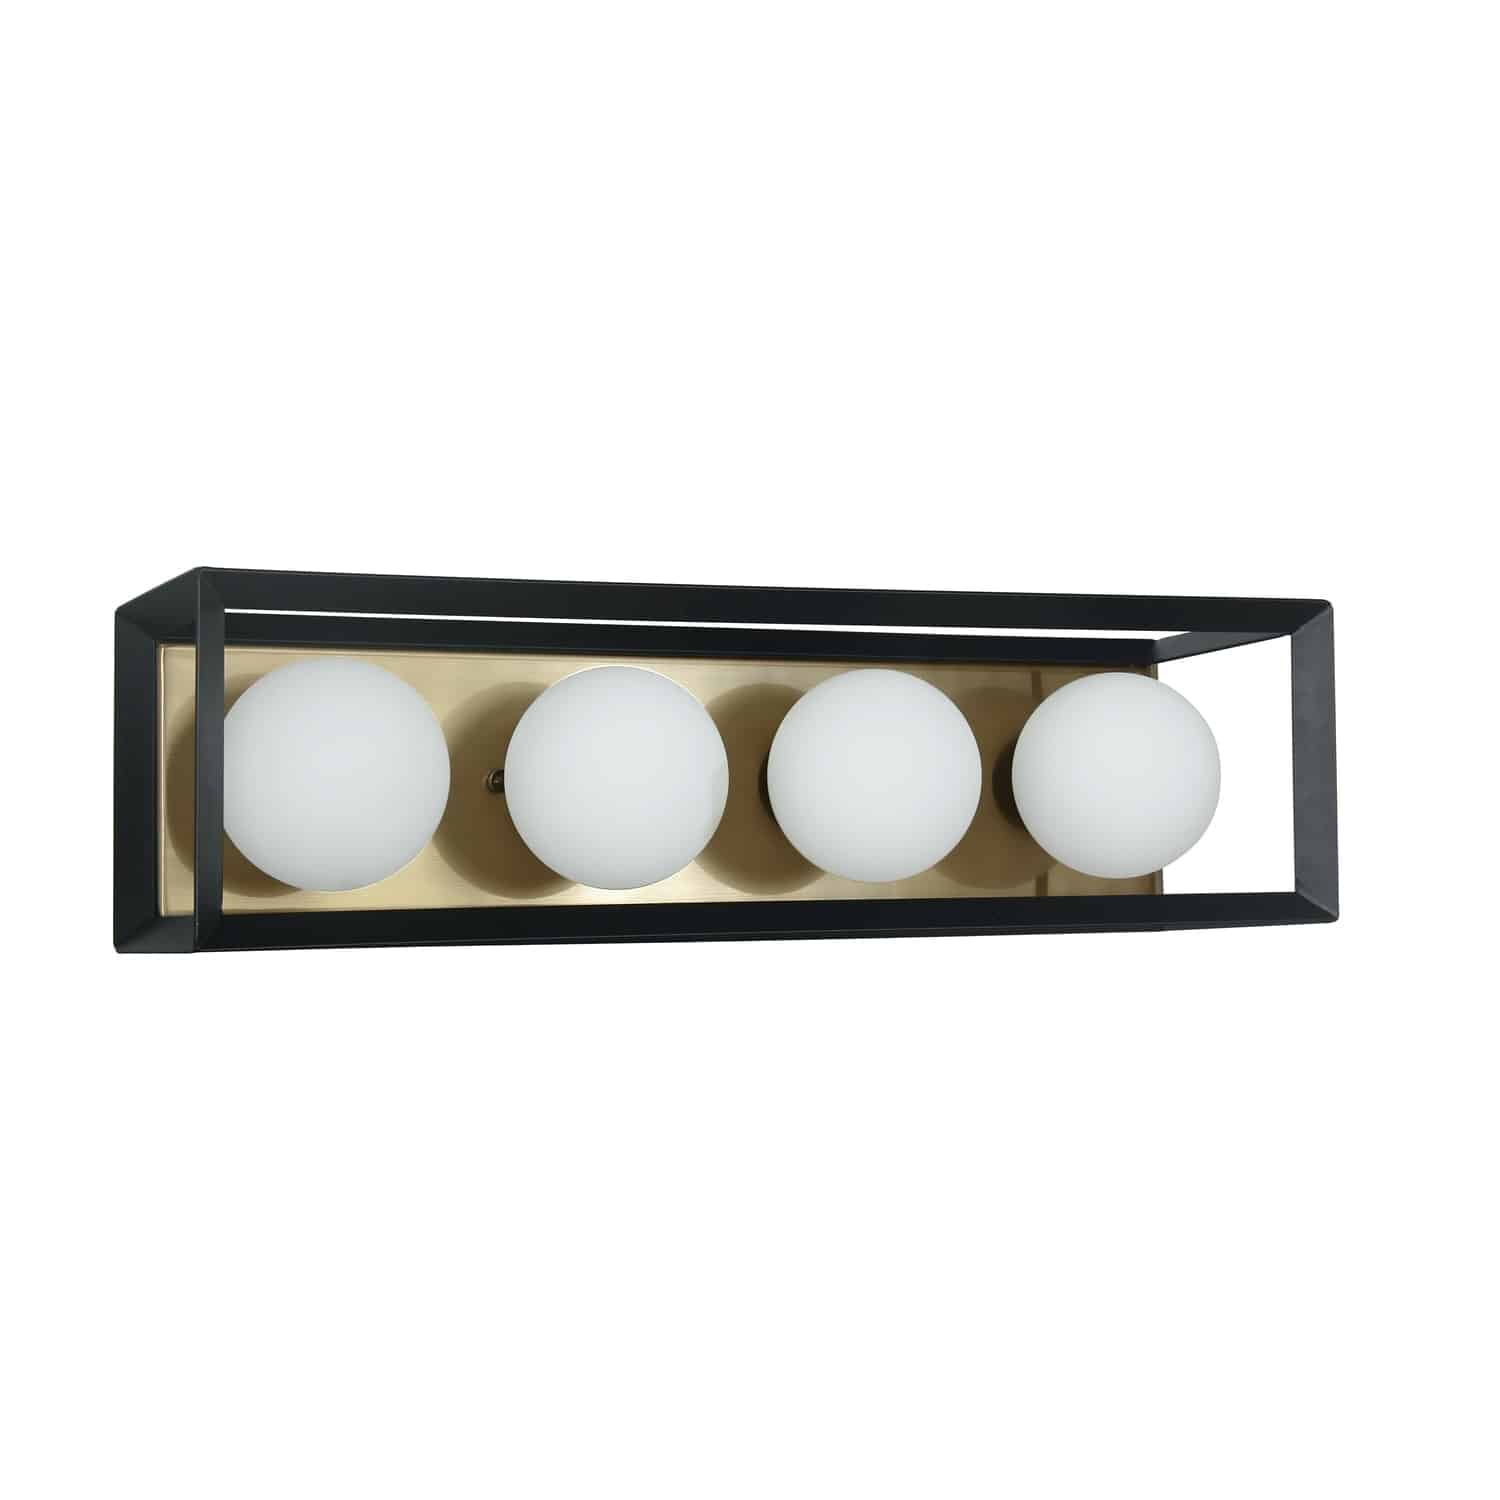 4 Light Halogen Vanity Black and Aged Brass Finish